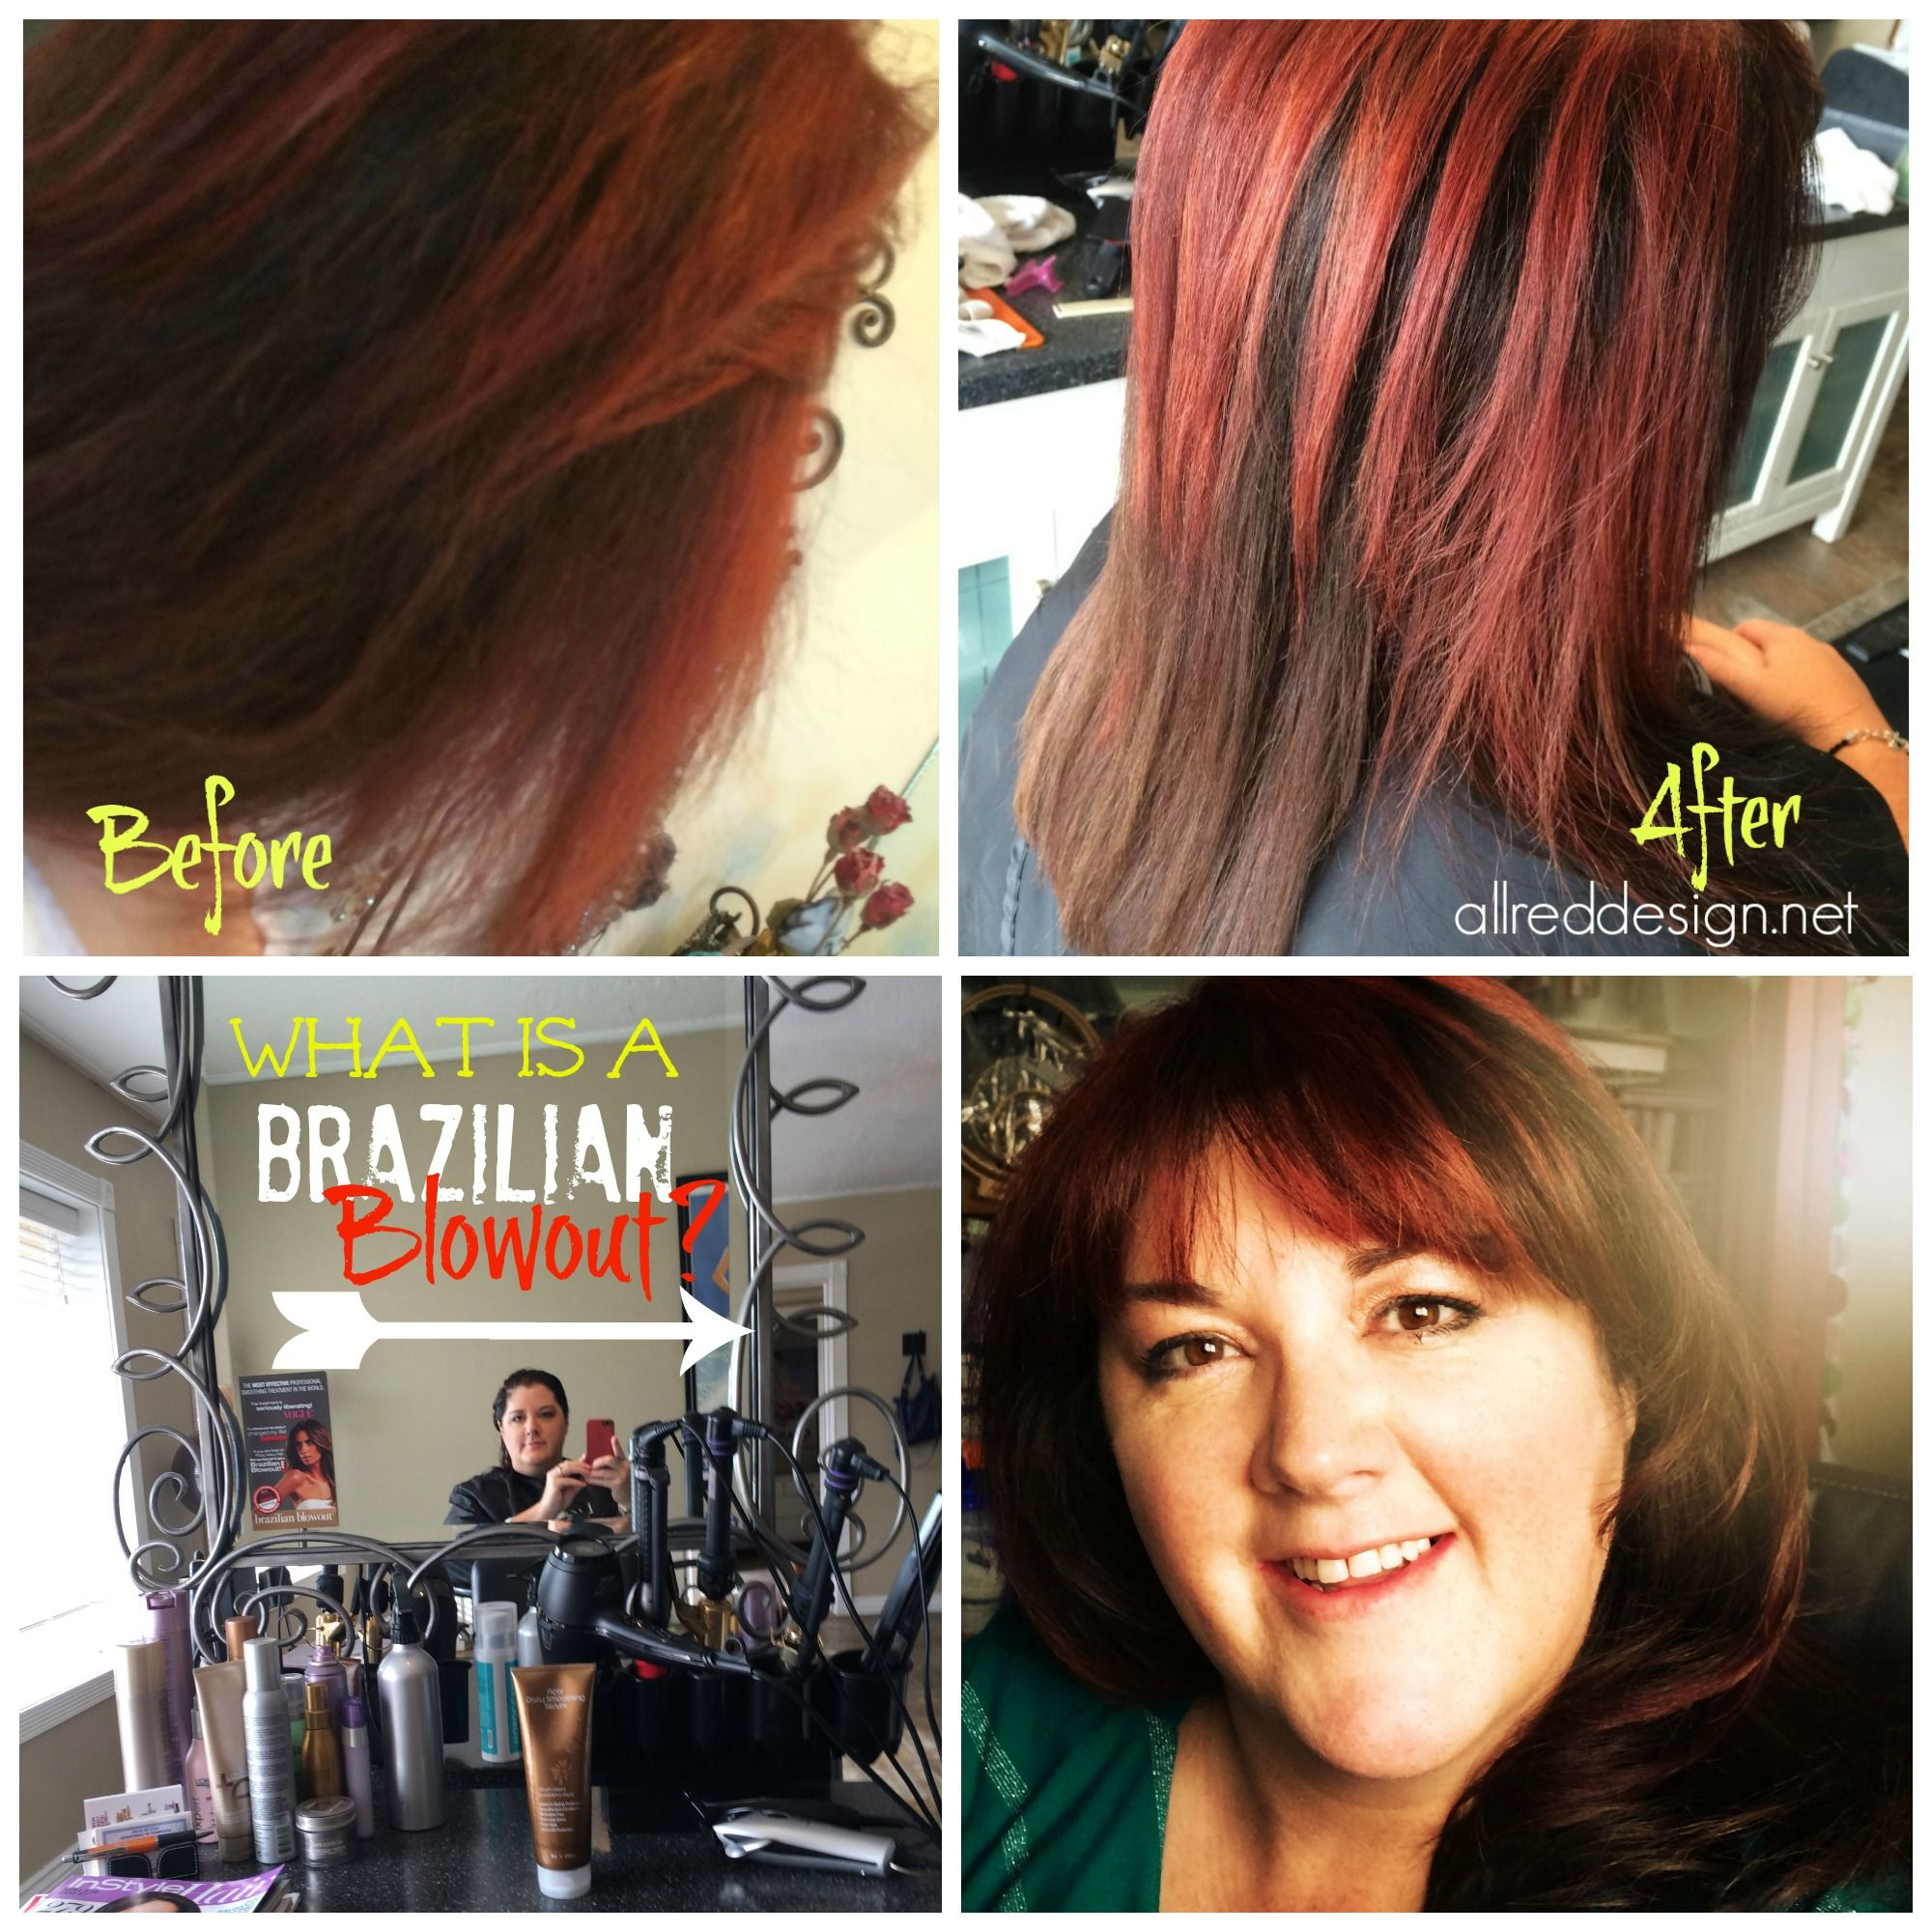 Learn about my first Brazilian Blowout. Blog post includes tons of info about what a BB is with before and after pics of me and others!